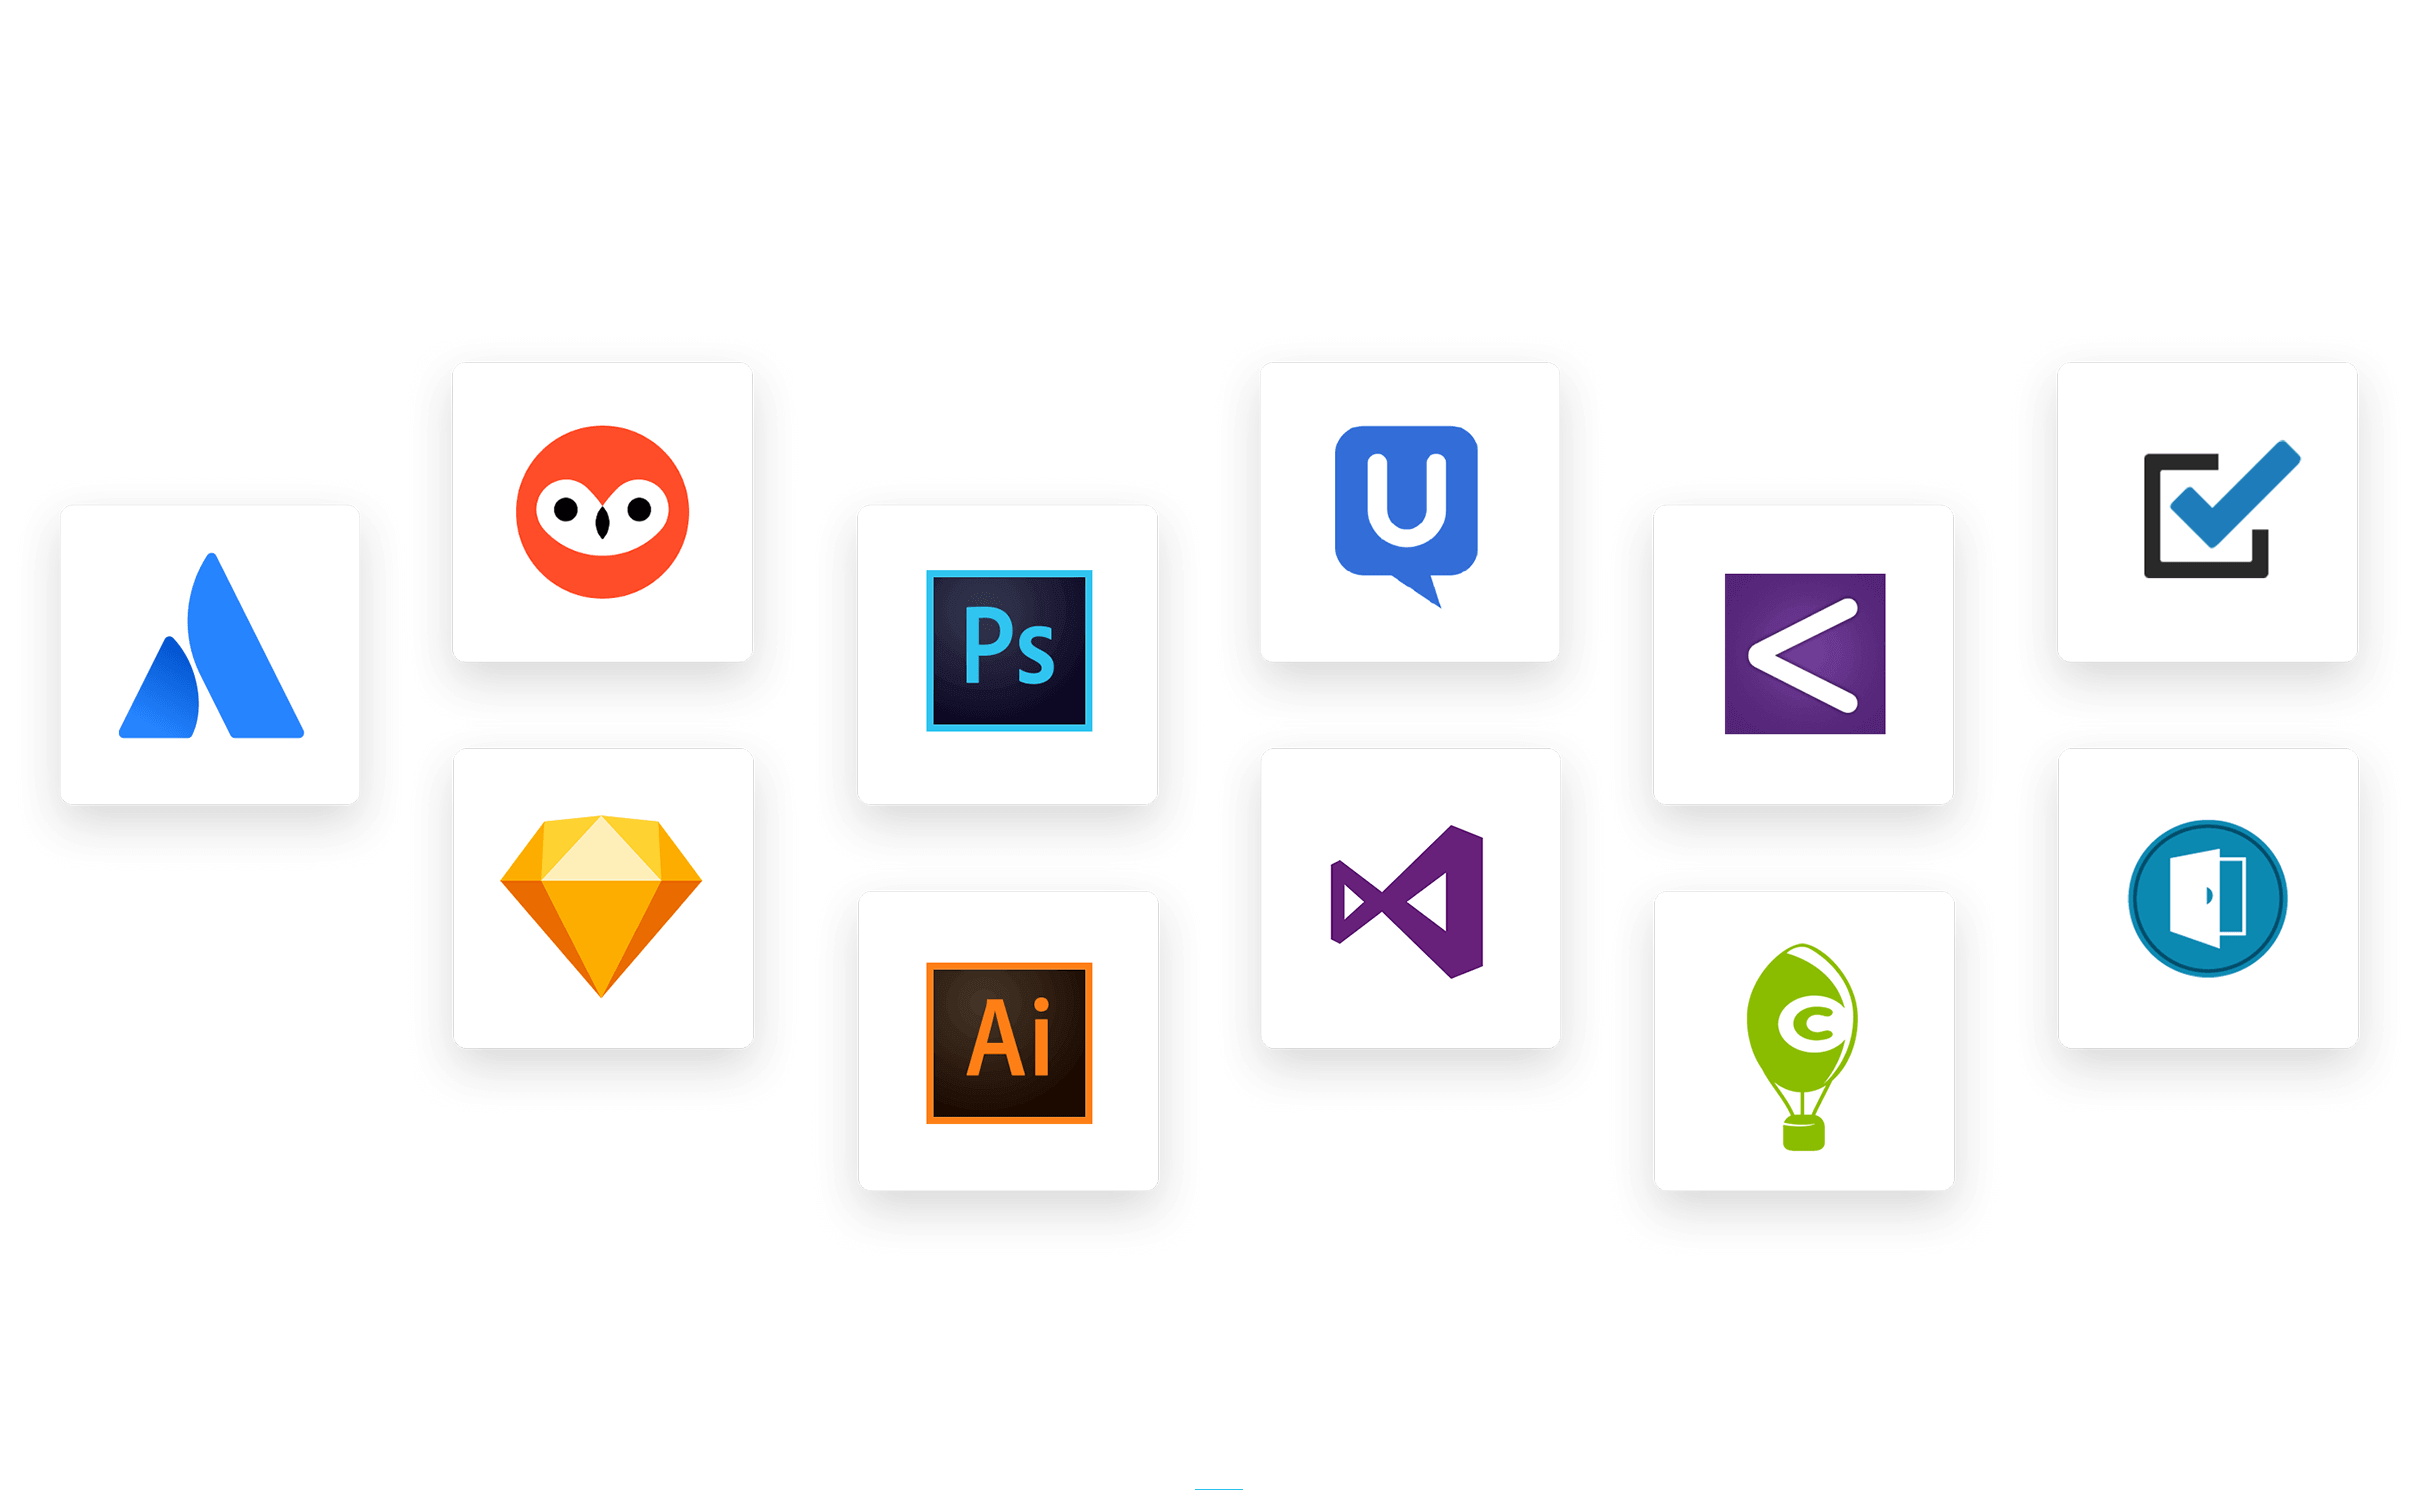 Integrations for prototyping with Justinmind